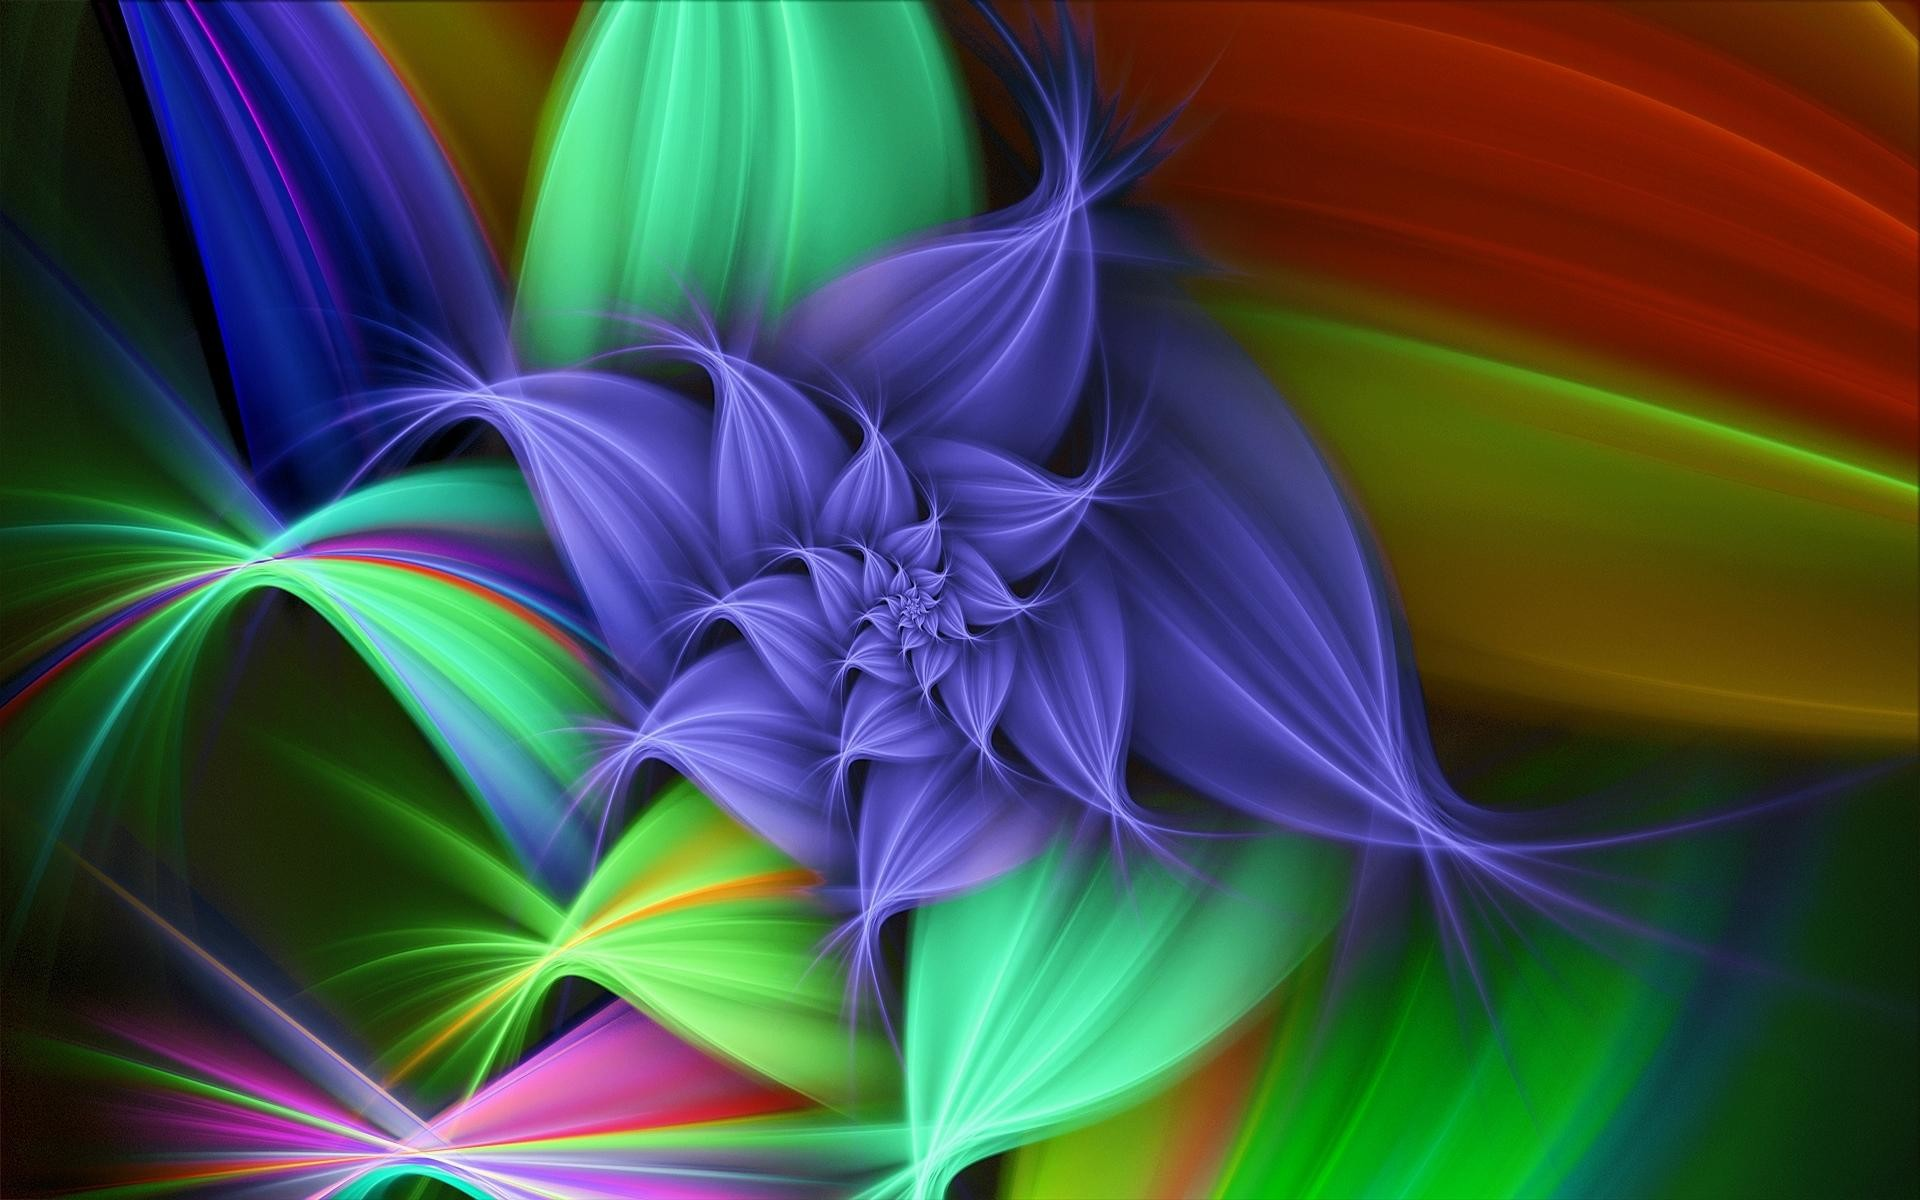 wallpaper.wiki-Download-Free-Bright-Color-Background-PIC-